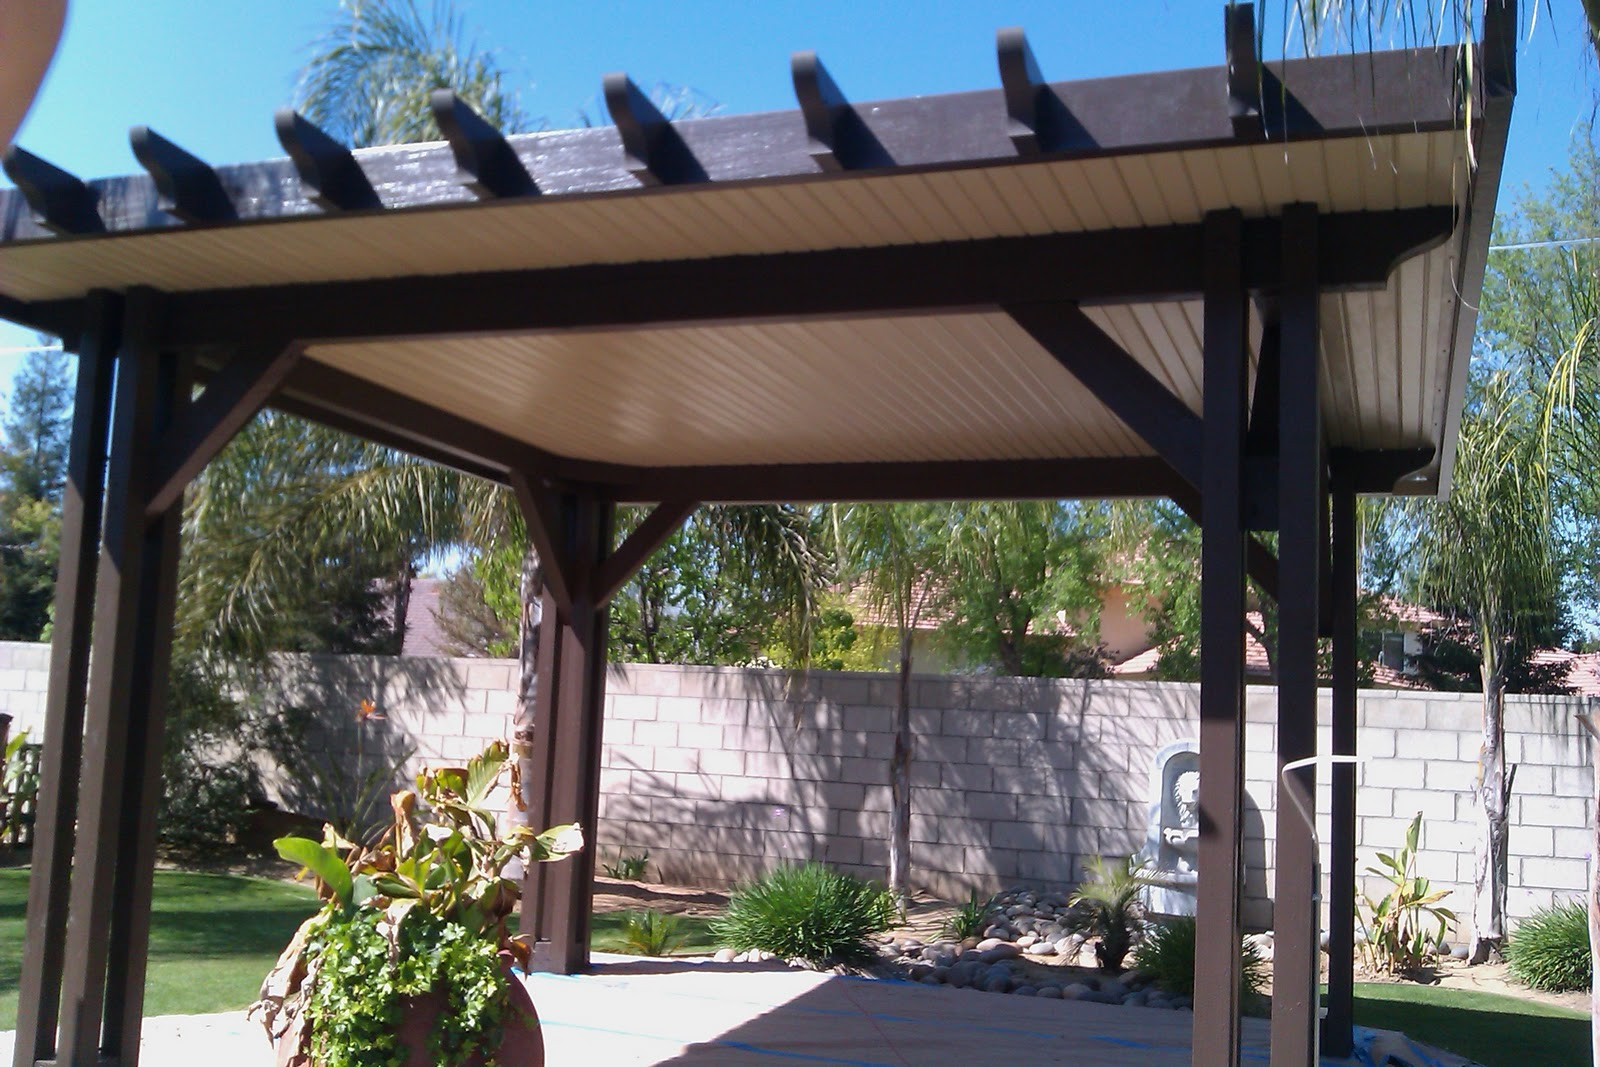 High Quality Stand Alone Garden Patio Cover In Ridgecrest, California